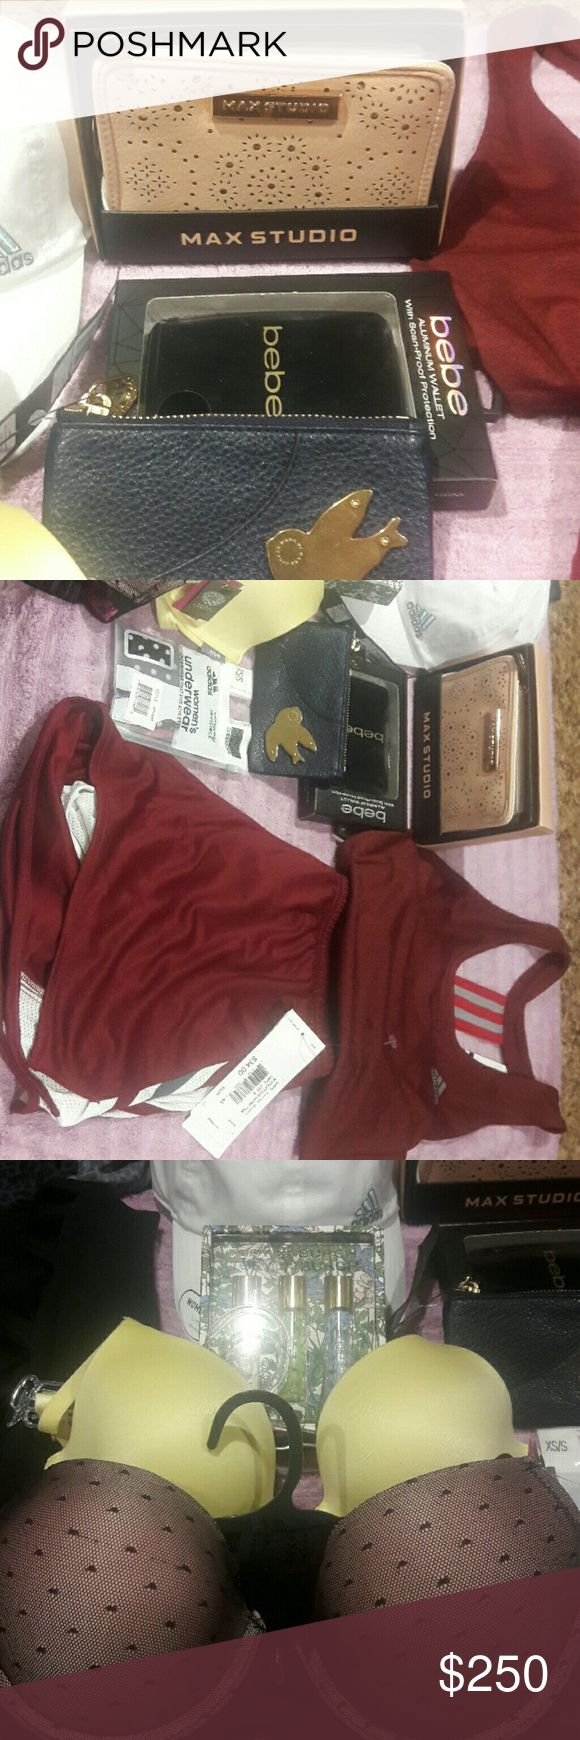 MIX STUFF OF BRAND NAMES MIx OFF LOTS STUFF  ADIDAS W UTILITY RUN SHORT GEAR AND DERBY TANK . PLUS XS / SCLIMACOOL UNDERWEAR. ADIDAS WHITE SQUAD RELAX CAP. TORY BURCH PERFUME BEBE ALUMINUM WALLET WITH SCAN PROOF PROTECTION WITH 7 SECURE FIT POCKETS MAX STUDIO WALLET VOGO SPORT/ YOGA LEGGINGS WITH CRISSCROSS HOLE ON THE SIDE -S VINCE CAMUTO no shoe BIKINI 3 pack VINCE CAMUTO 34C  PUSH UP BRA SUNNIE AERIE 32 D BRA TORY BURCH, ADIDAS, BEBE, SALVATORE FERRAGAMO, Accessories